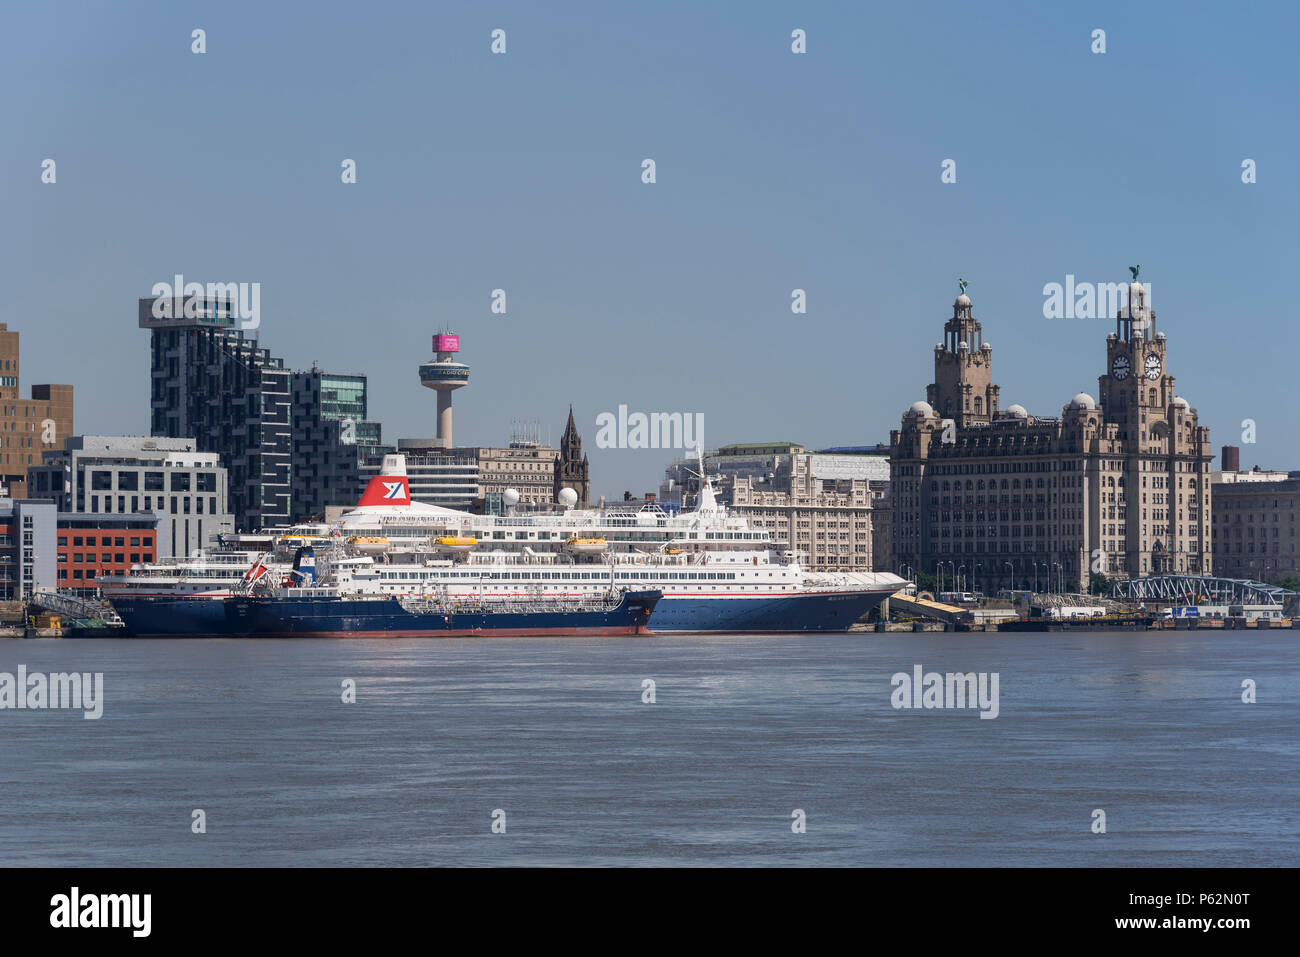 Cruise Liner Black Watch at Liverpool pierhead cruise terminal. - Stock Image